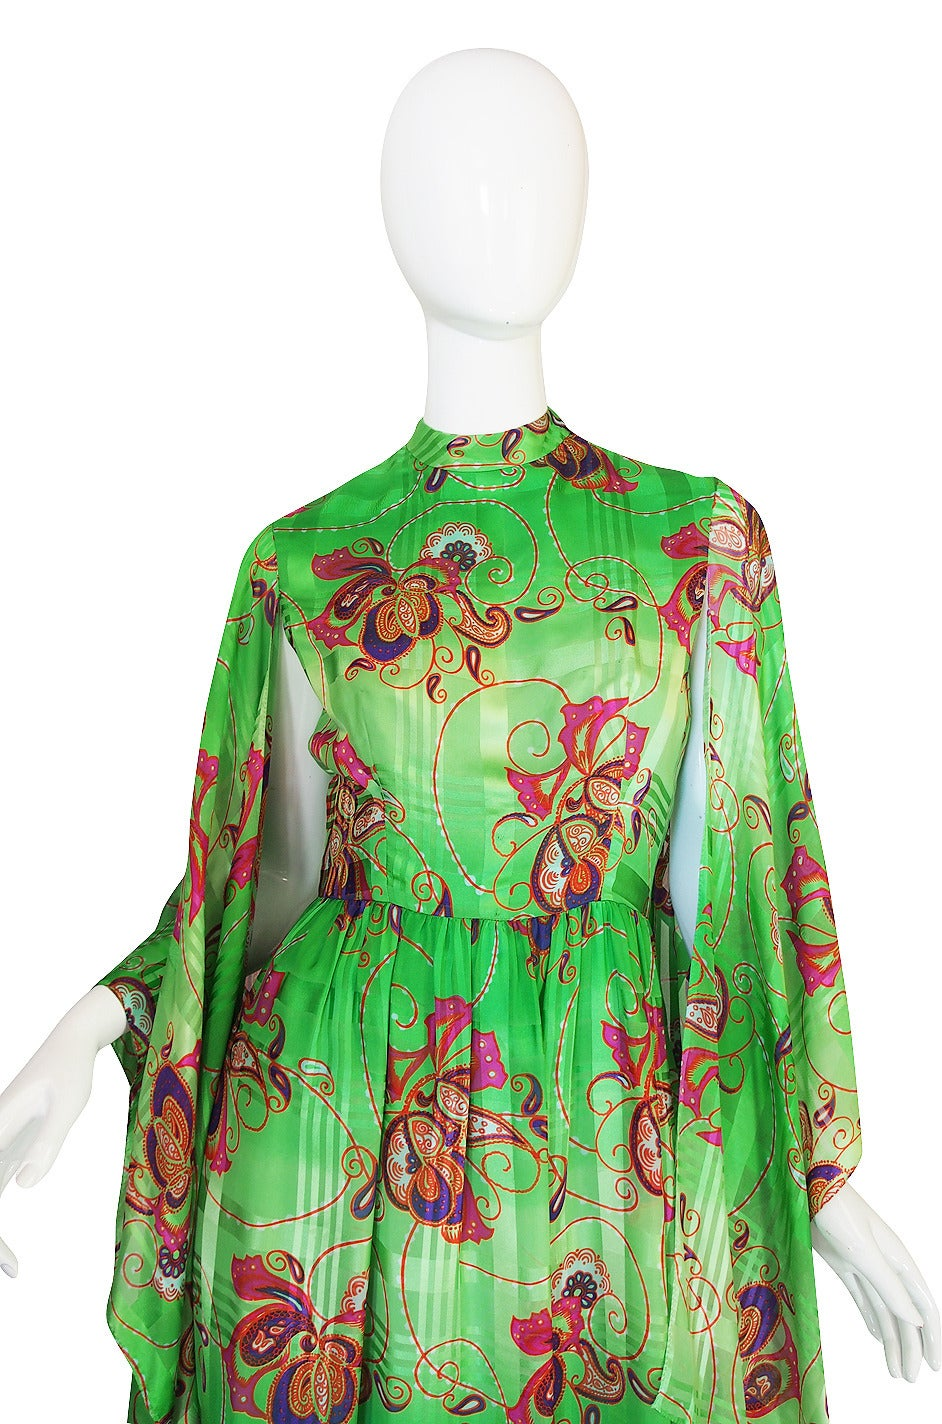 Women's 1970s Mollie Parnis Angel Kimono Sleeve Green Silk Dress For Sale